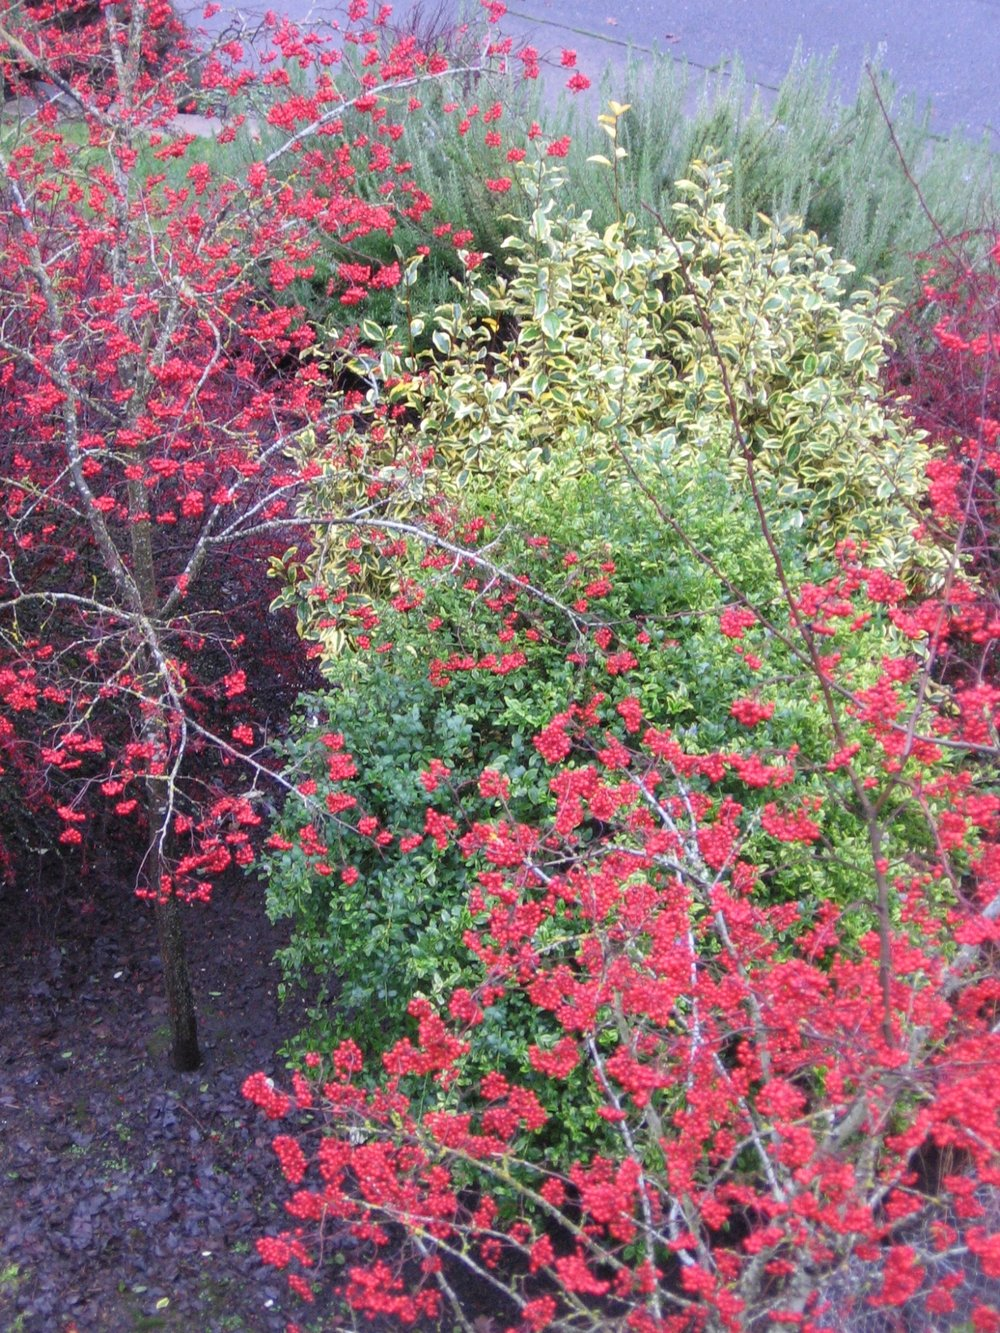 Red berries of Crataegus phaenopyrum (Washington Hawthorn). Planted here with yellow-and-green variegated evergreens Ceanothus 'El Dorado' and Elaeagnus ebbingei 'Gilt Edge'--a fantastic winter combination.